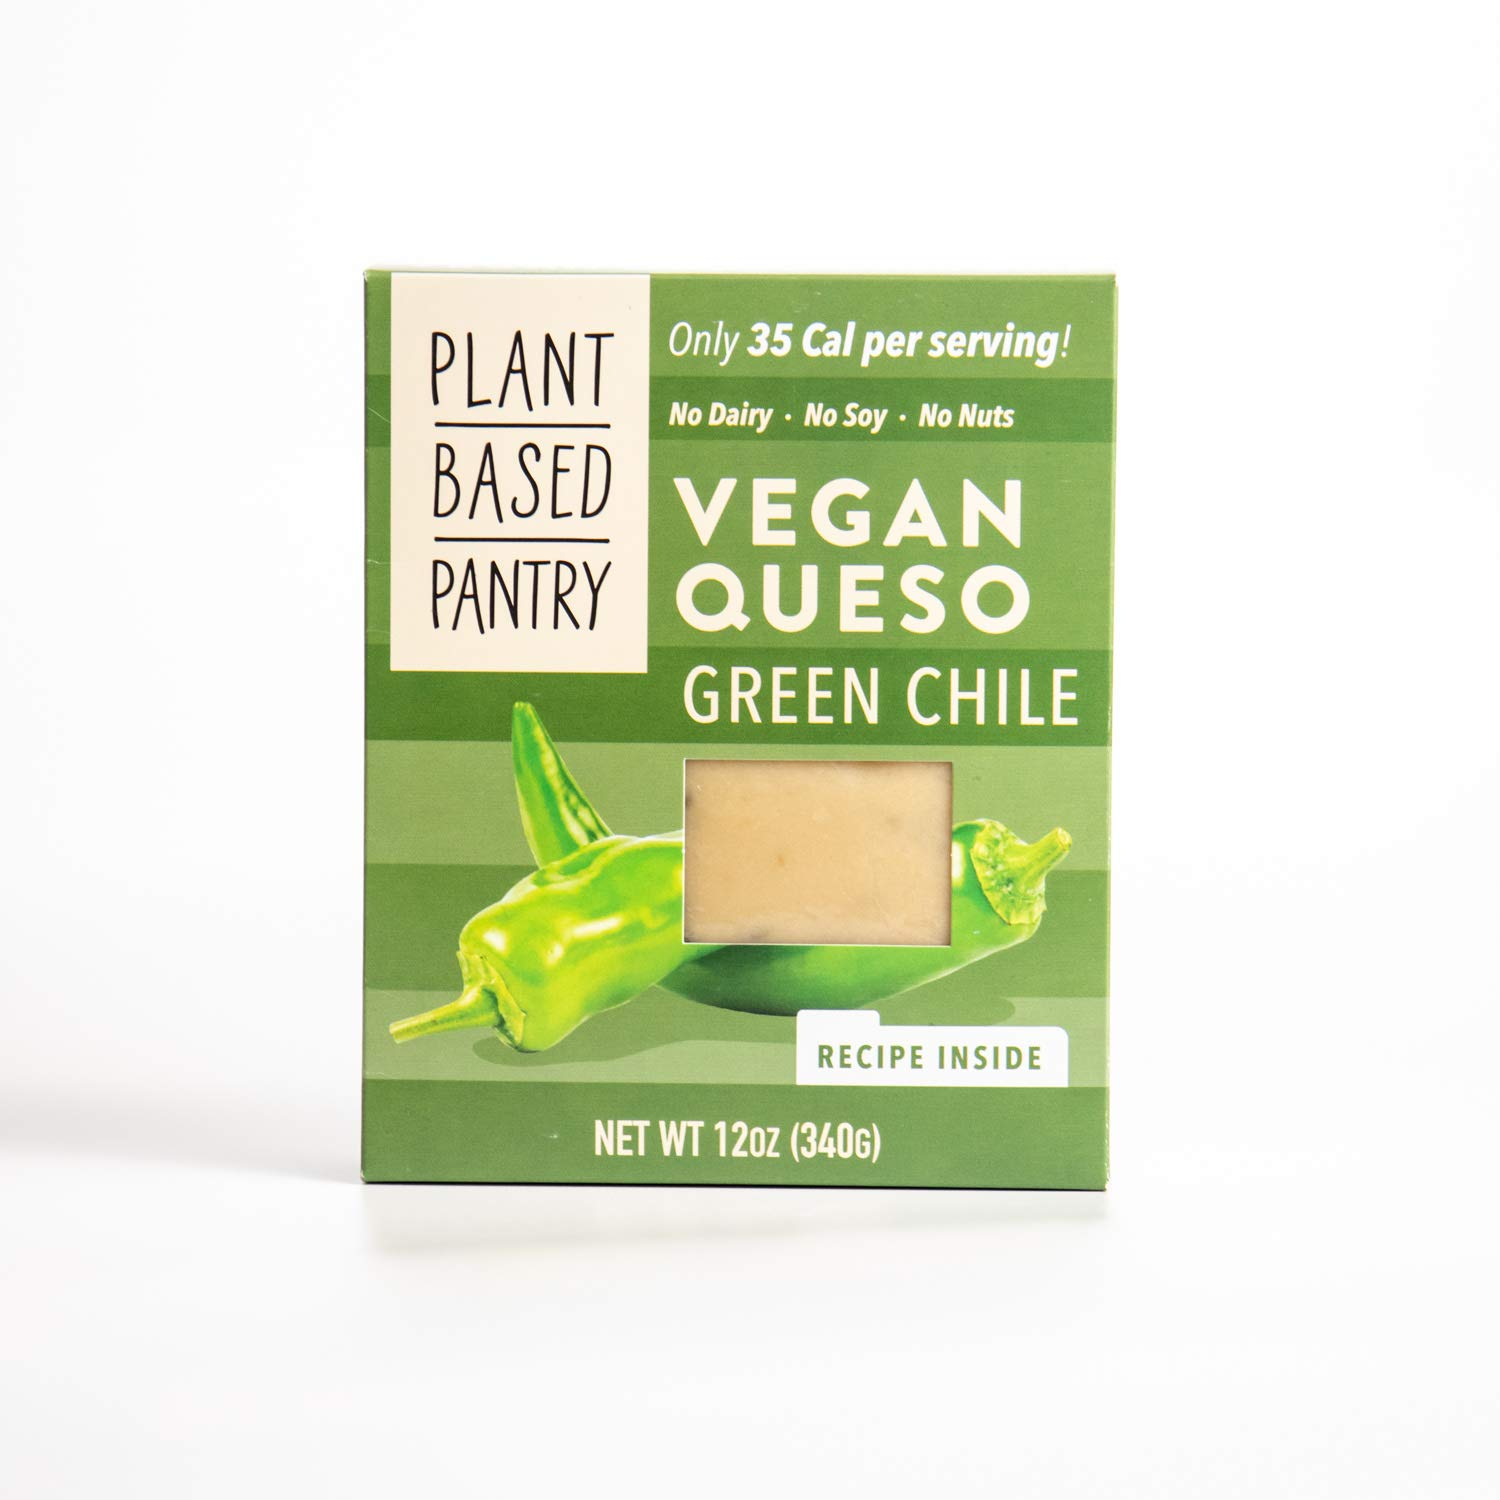 Vegan Queso Green Chile by Plantbased Pantry